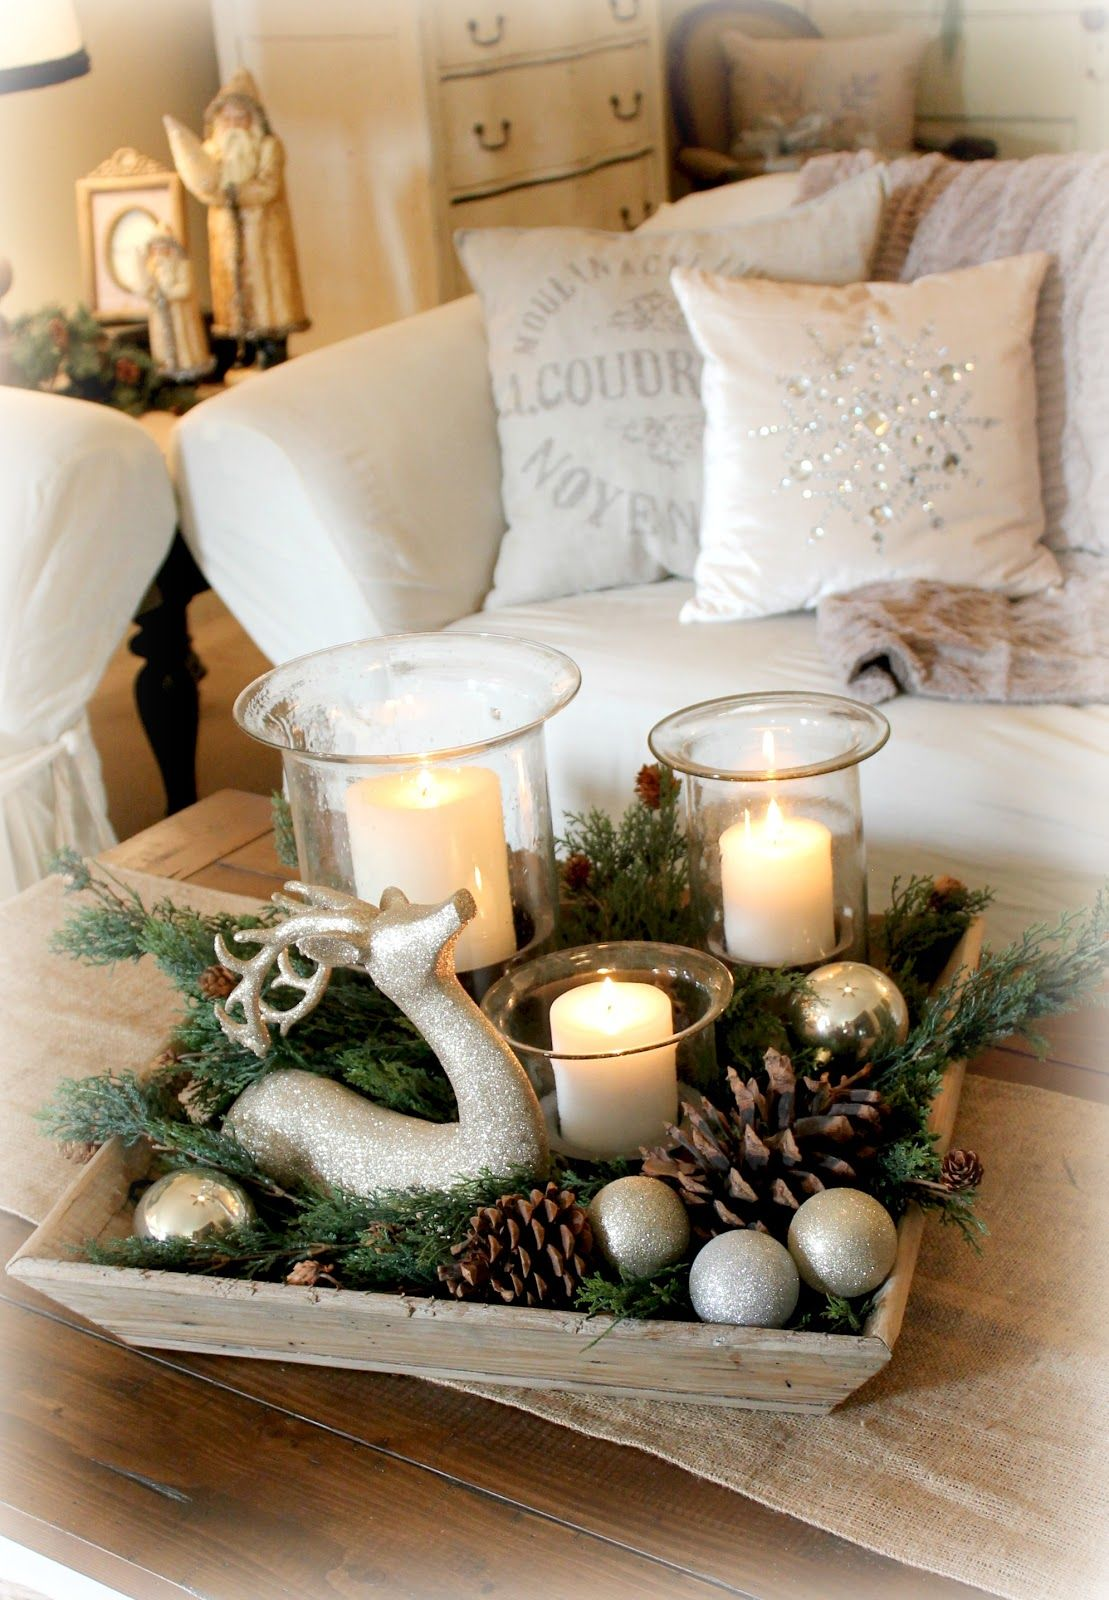 this turned out cute fill tray with candles deer evergreen end table christmas decor pine cones and ornaments north shore dining room furniture lack sofa white dresser mirror